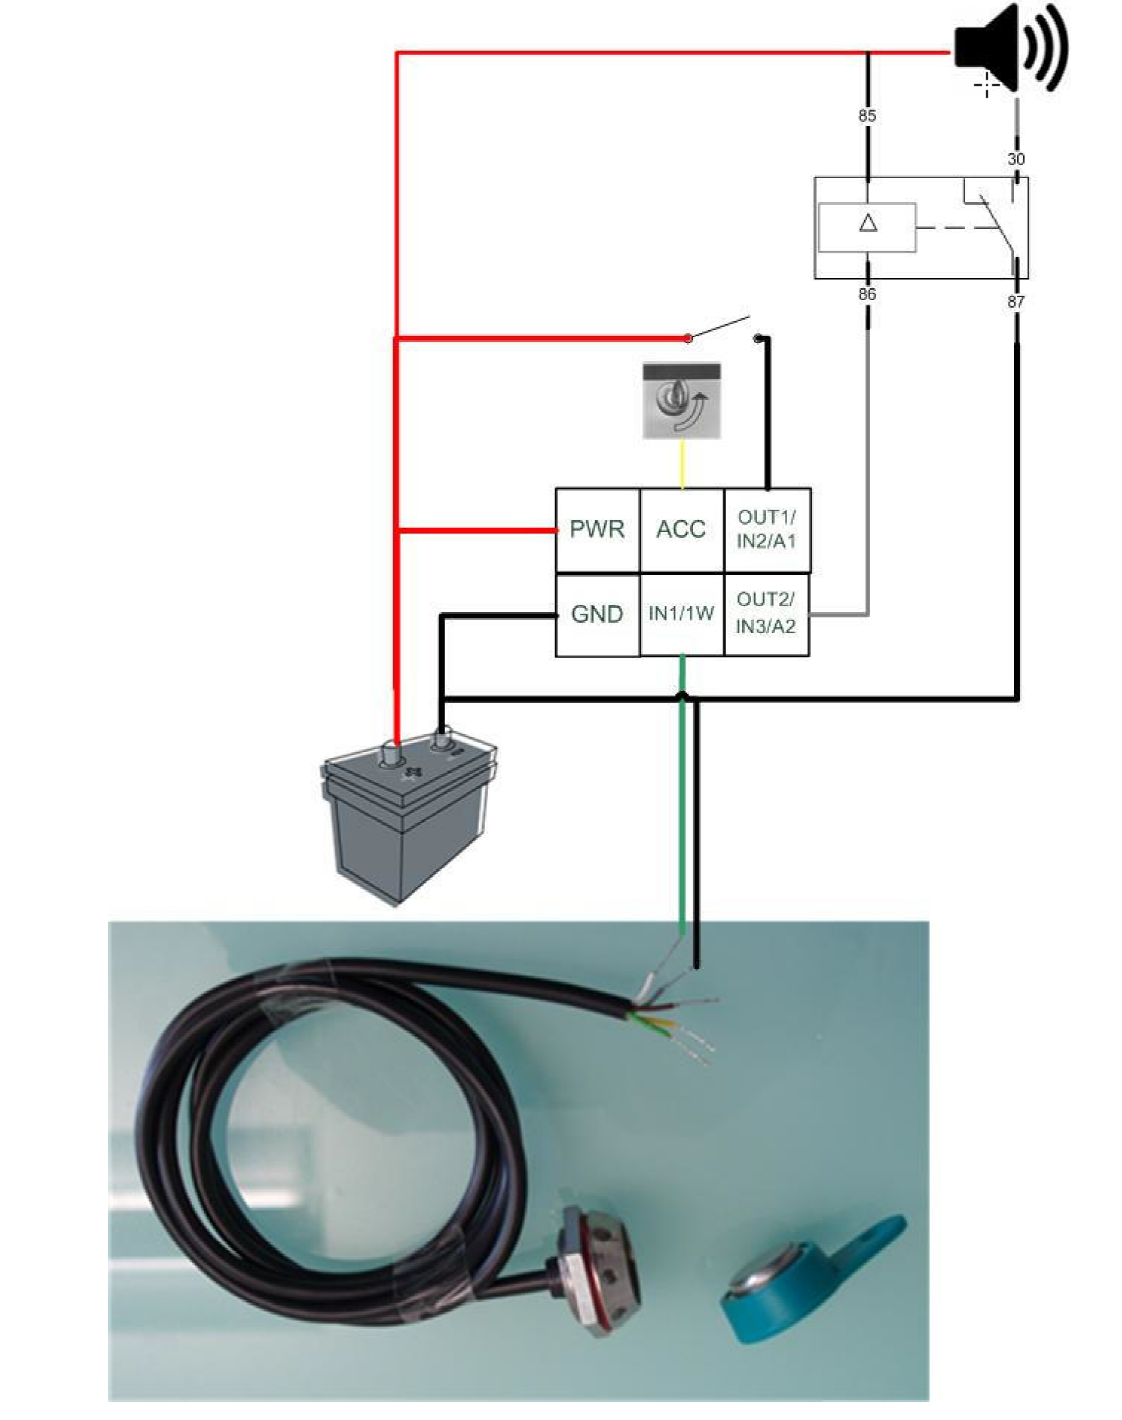 image2015 5 12 14%3A5%3A12?version=1&modificationDate=1431432359069&api=v2 gps dynamic einbauanleitung ak1 Basic Electrical Wiring Diagrams at fashall.co